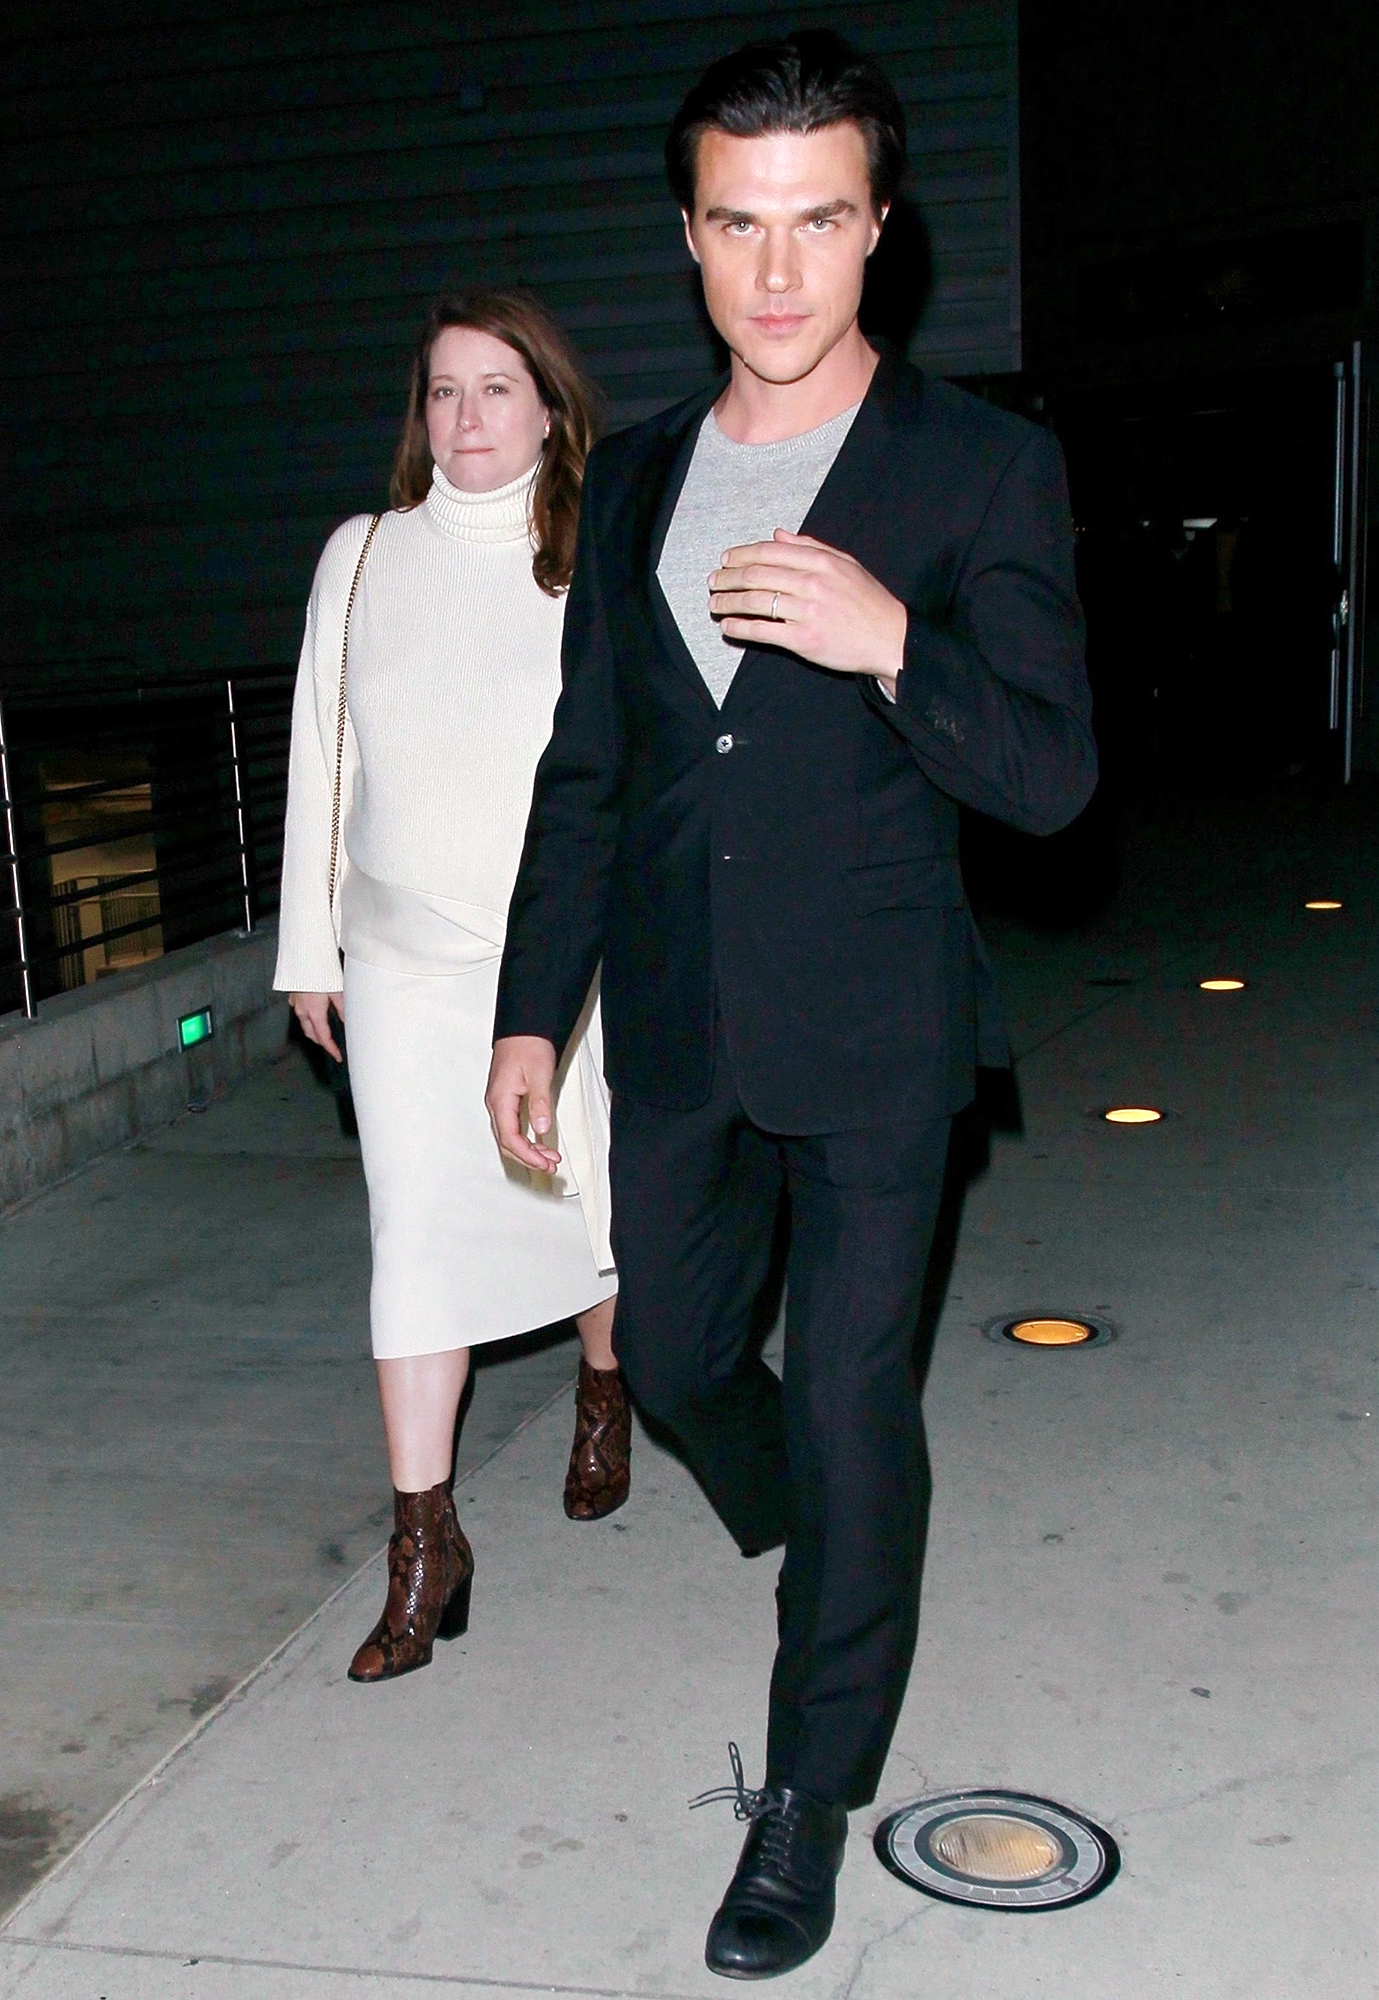 Sarah Roberts Finn Wittrock Pregnant - Sarah Roberts and Finn Wittrock heading to an event together in Los Angeles, California on December 4, 2018.